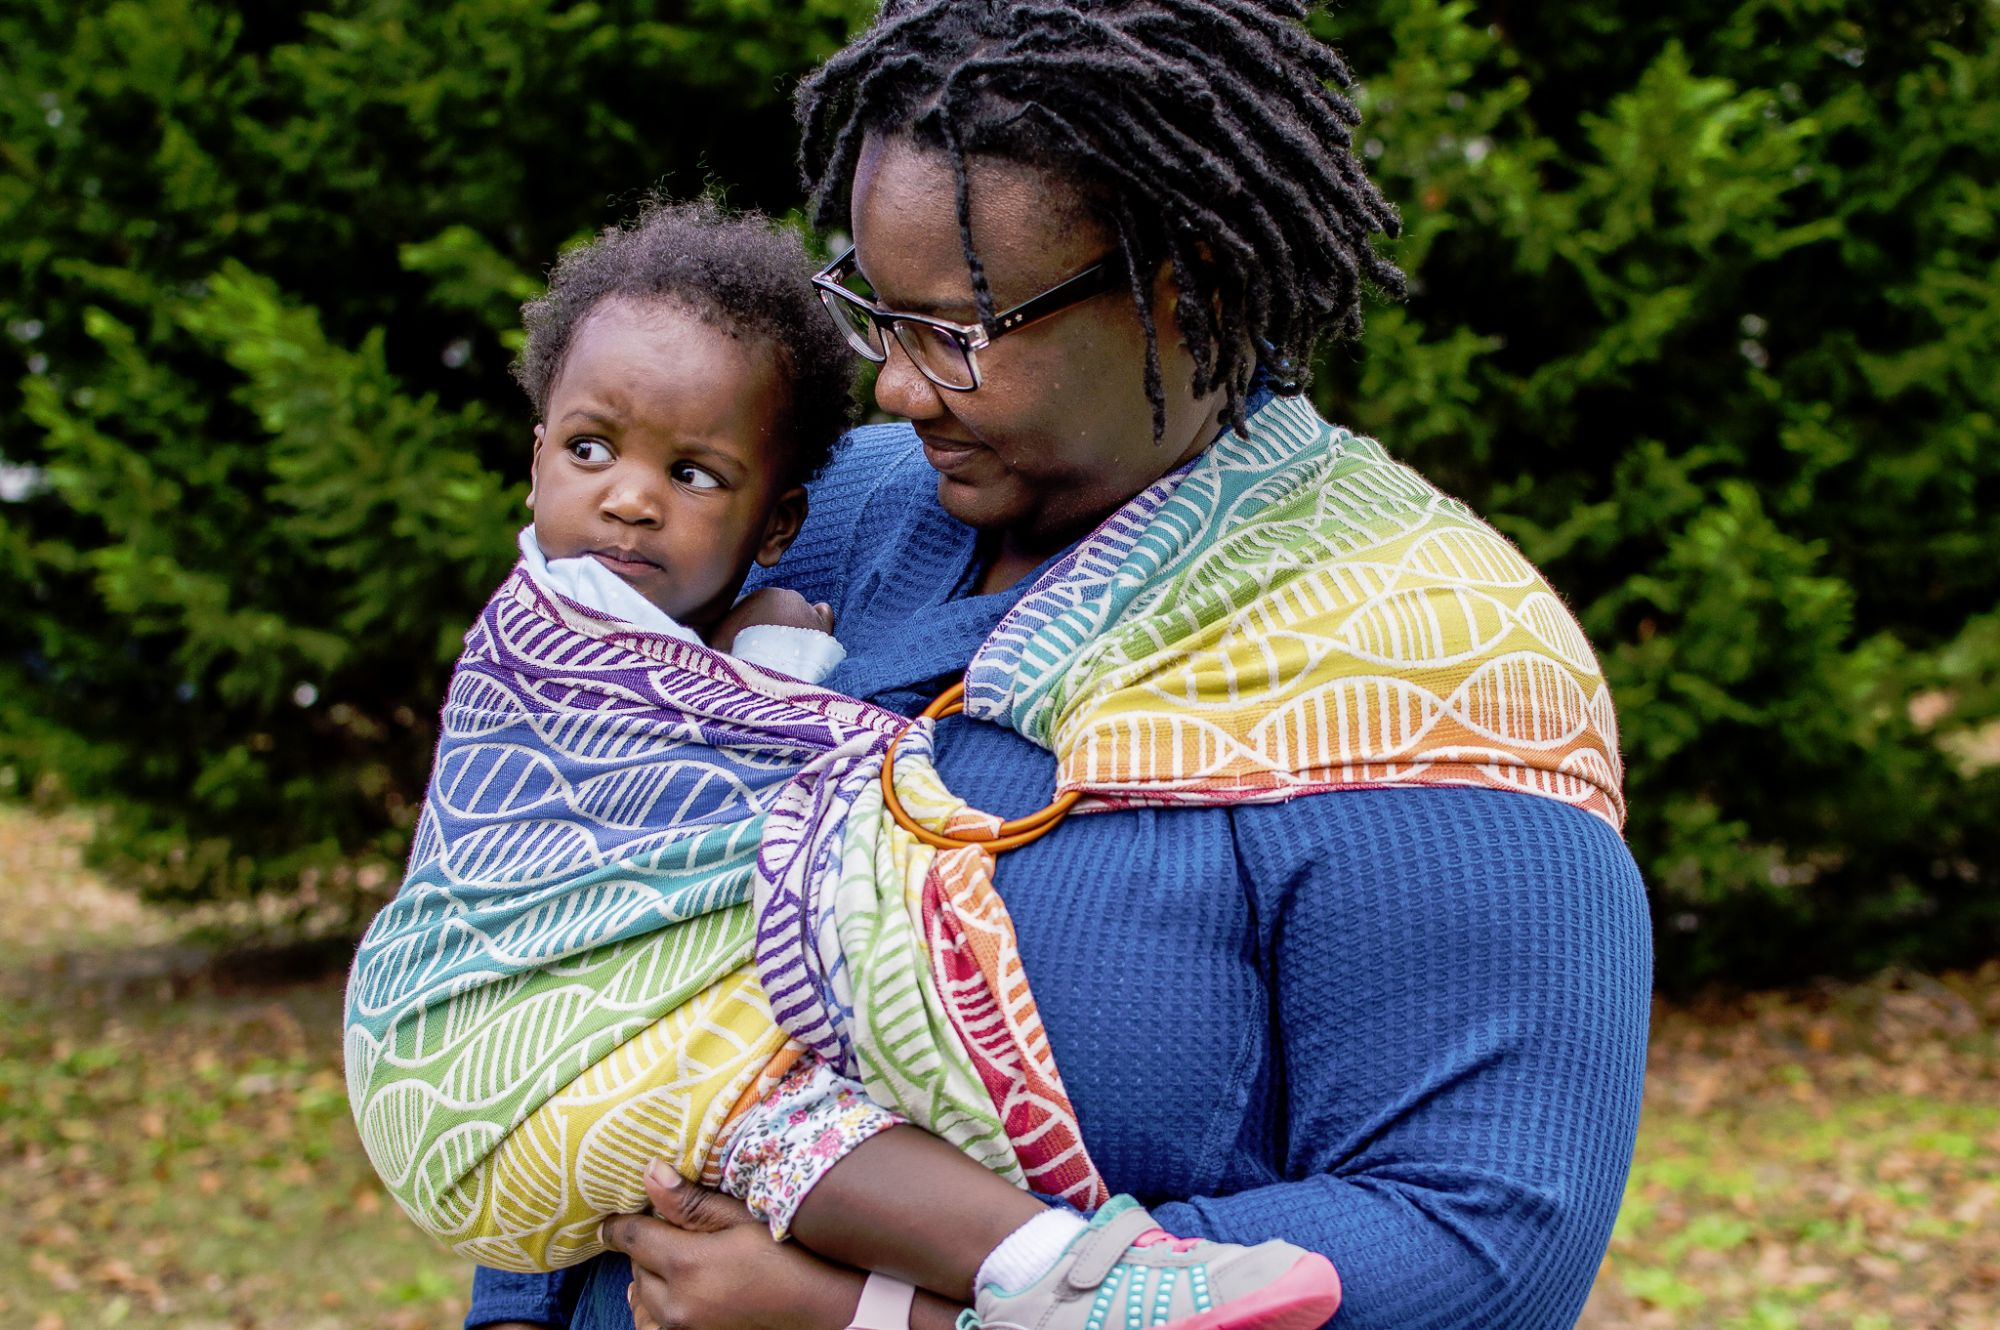 Photographer Brittany Brown Marsh with her daughter, wearing a Tekhni exclusive Bios Spectrum